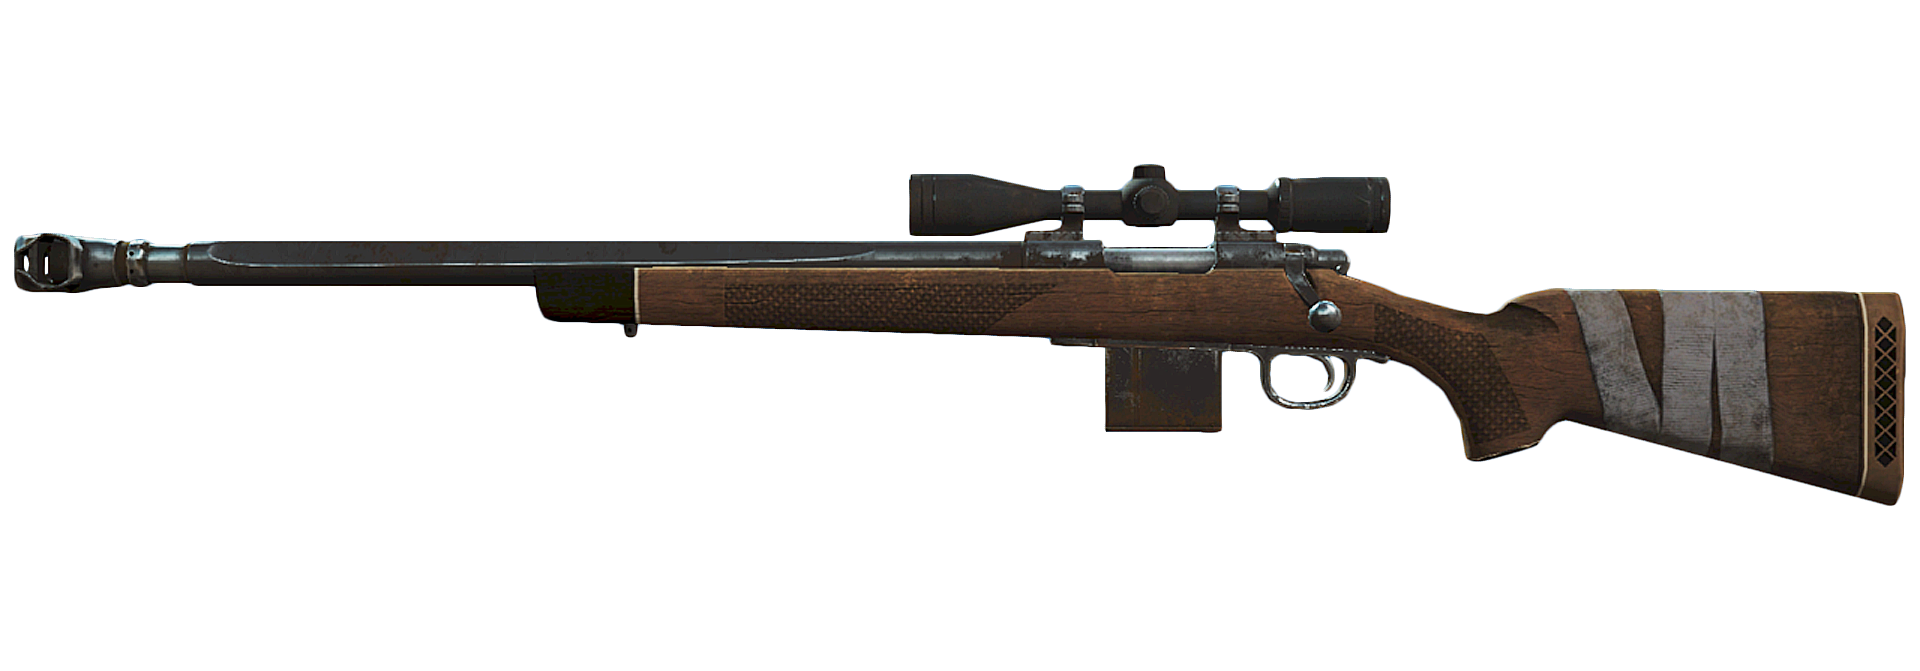 Image - FO4 Compensated hunting sniper rifle.png   Fallout ...